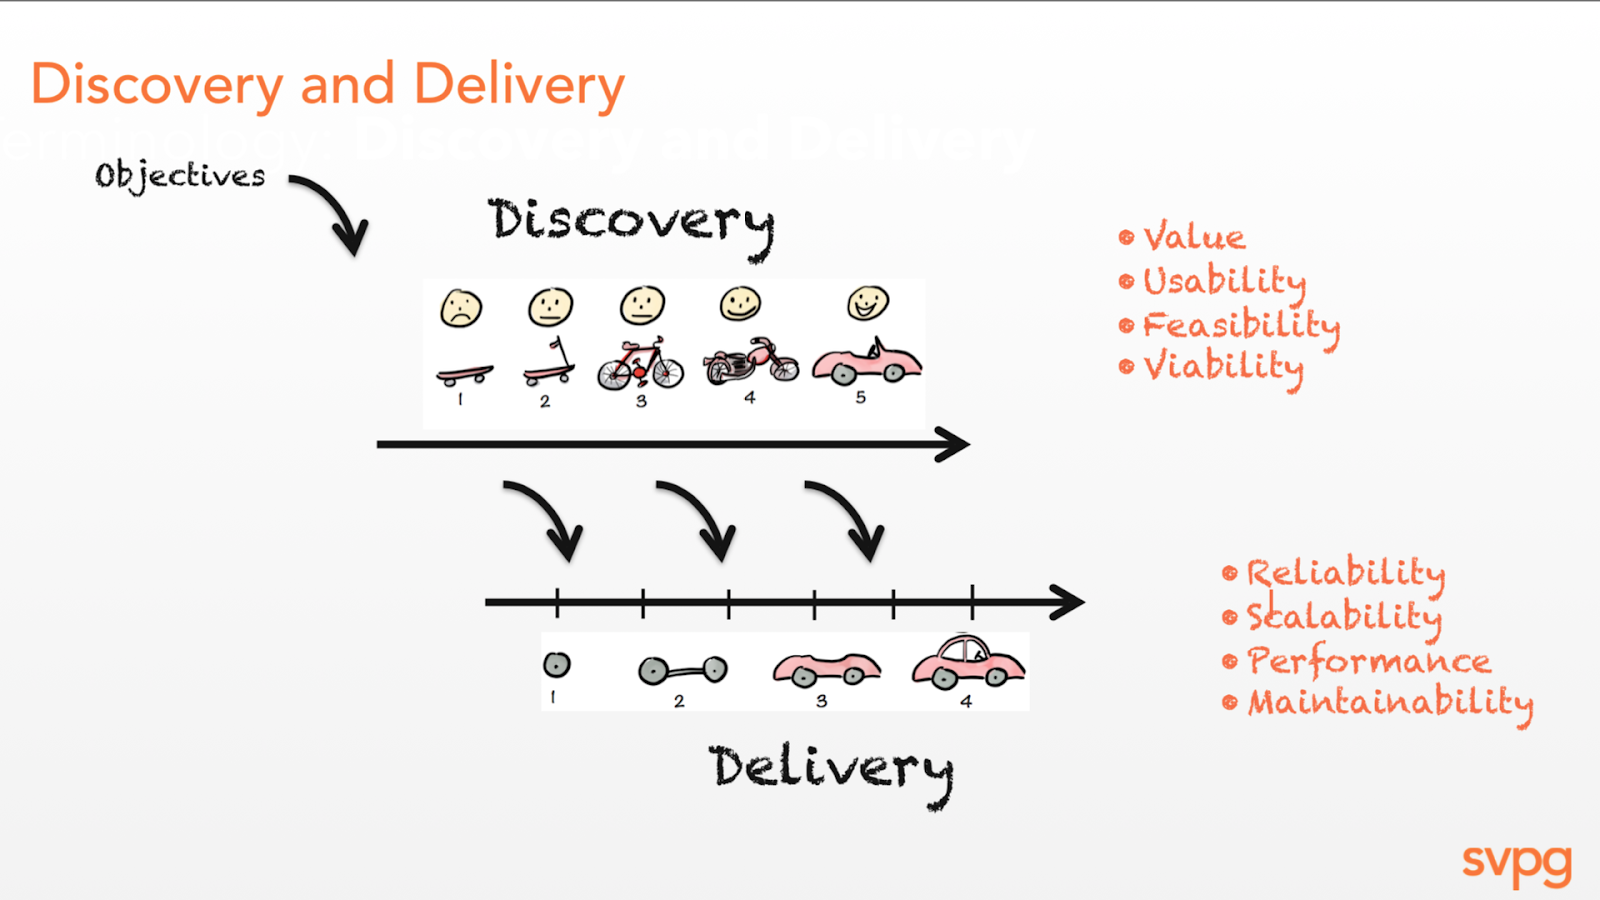 Discovery and Delivery